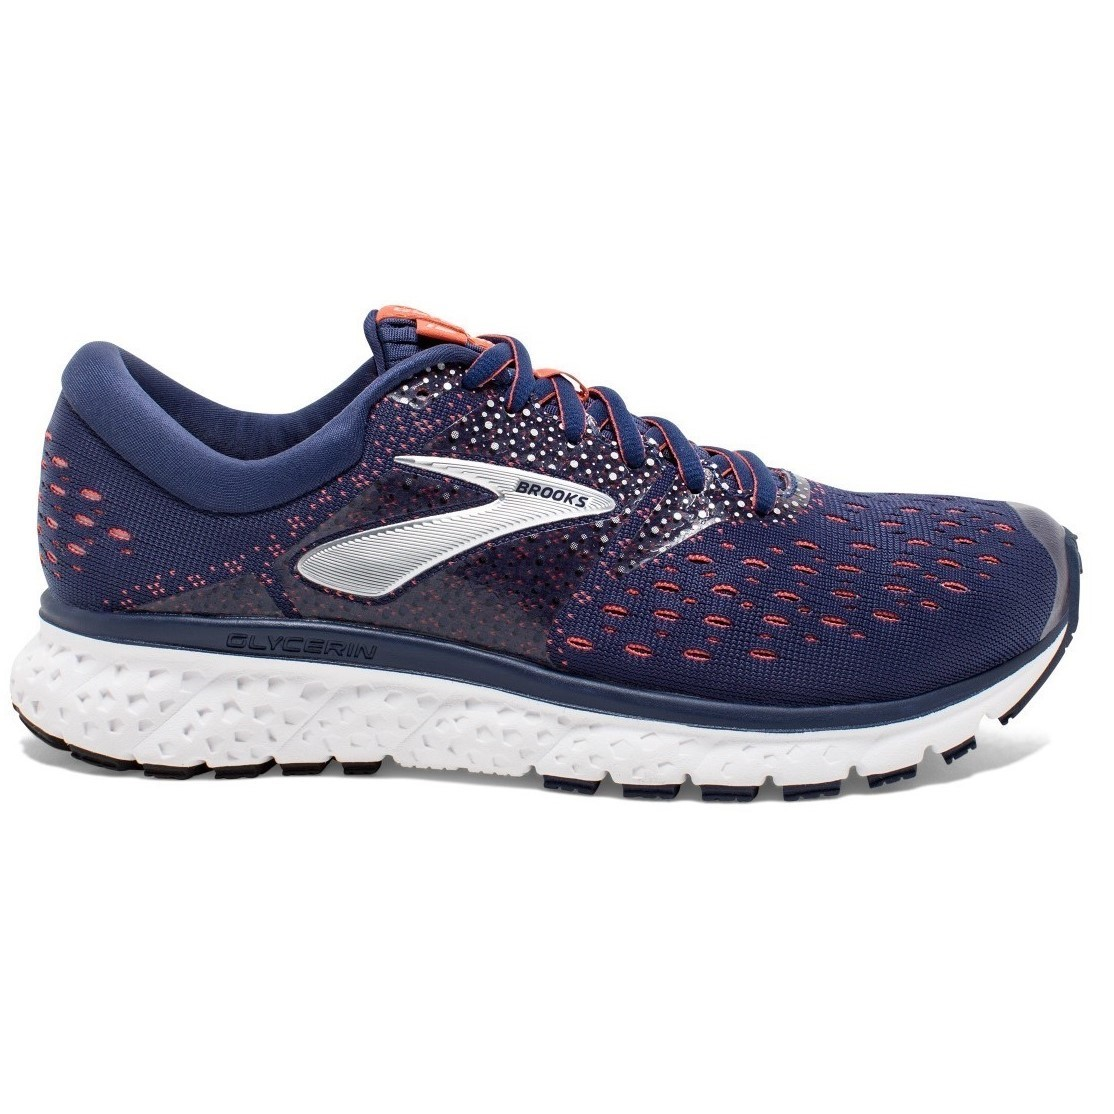 Brooks Glycerin 16 Running Shoe Review | Zappos.com